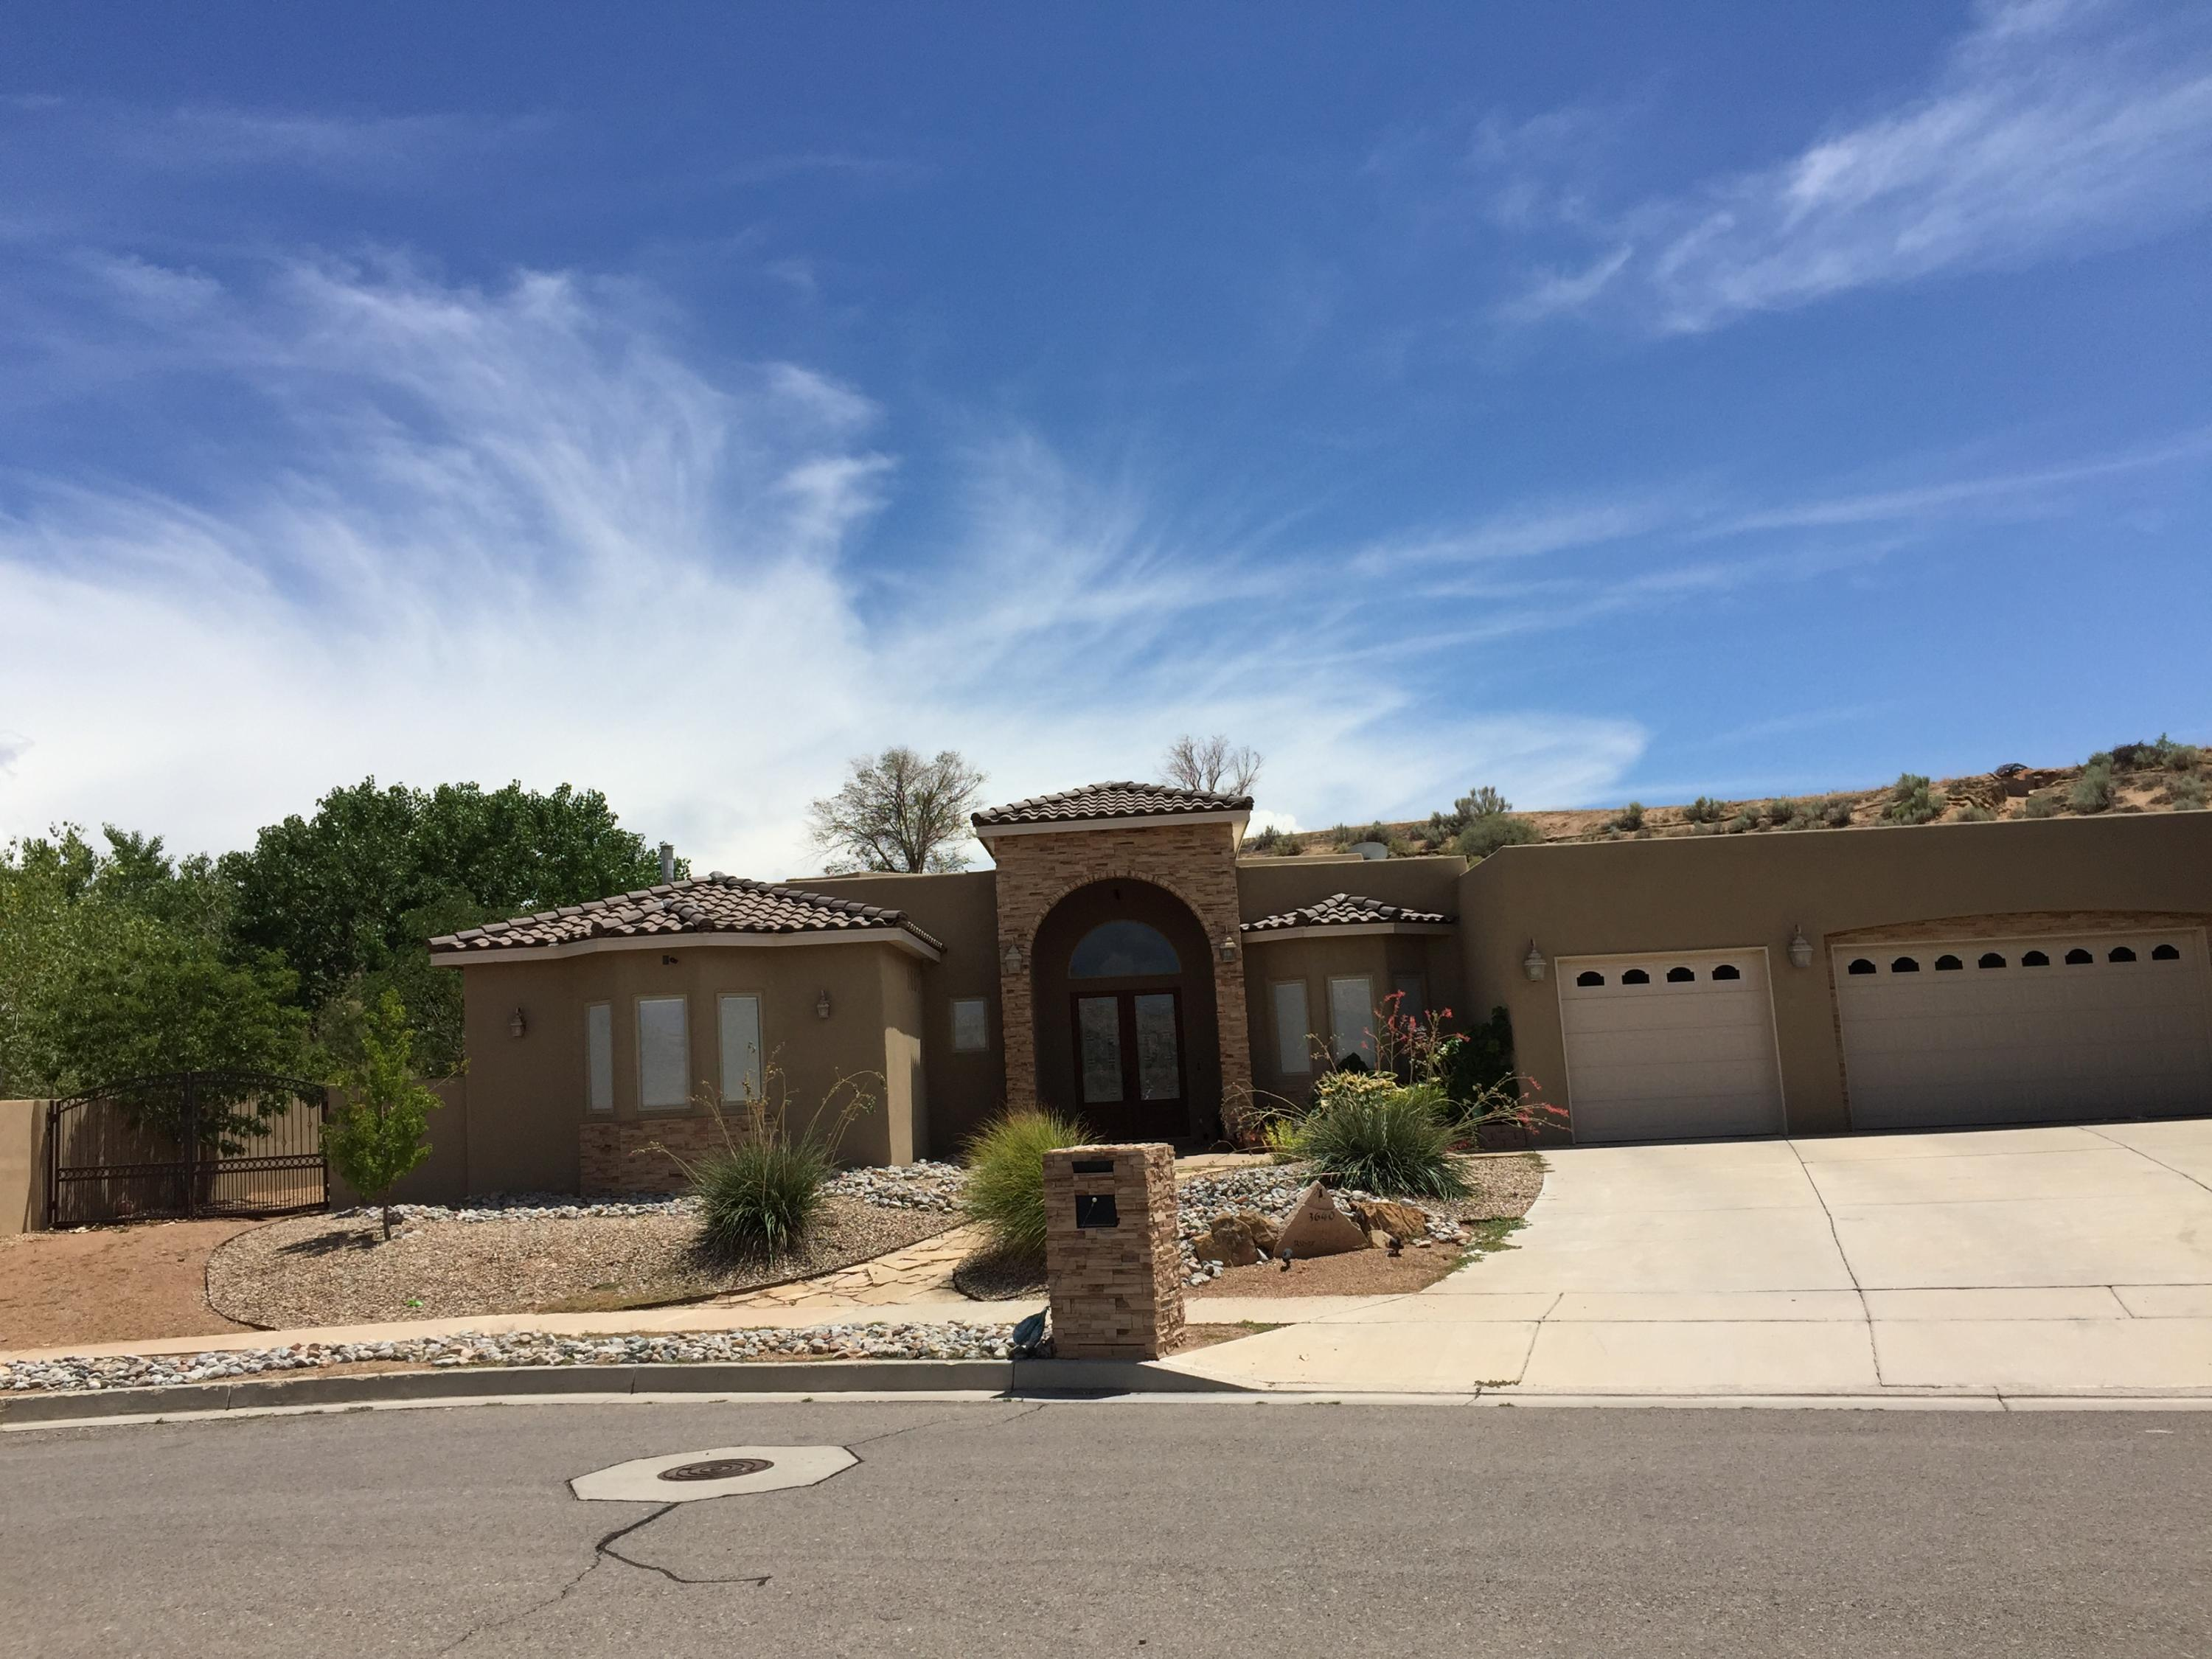 3640 GREYSTONE RIDGE Drive SE Property Photo - Rio Rancho, NM real estate listing